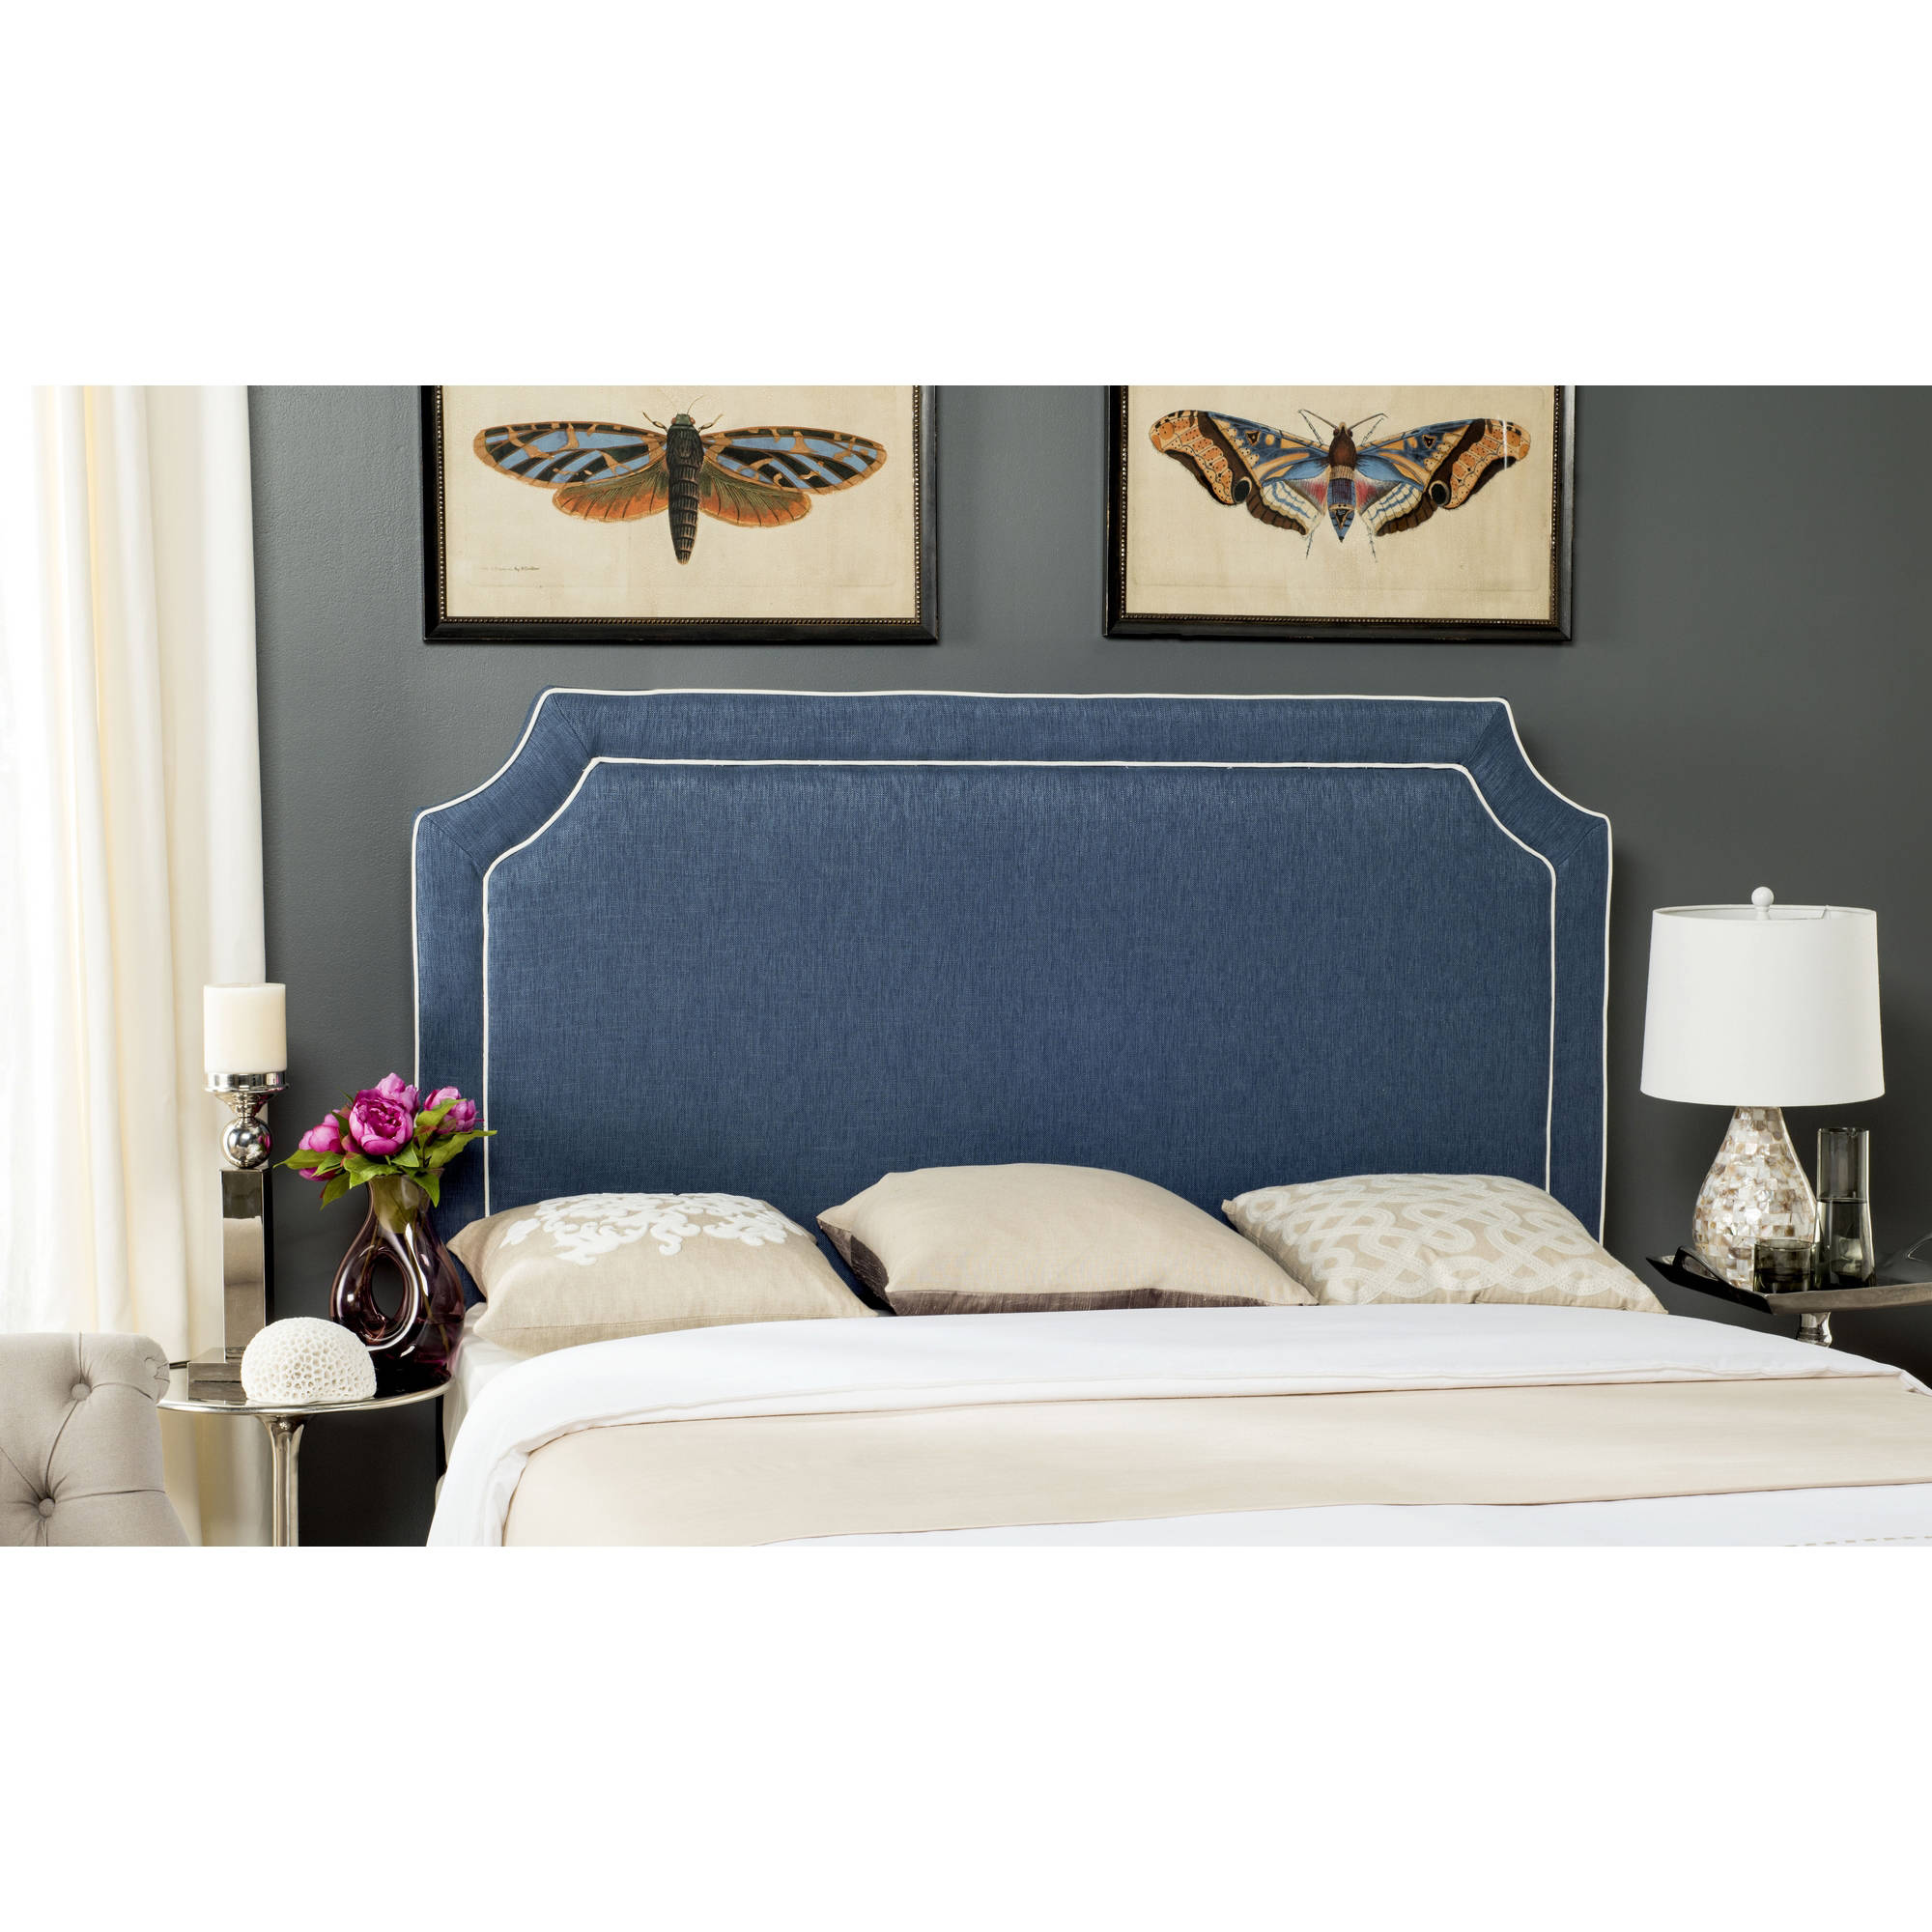 Safavieh Dane Piping Headboard, Available in Multiple Color and Sizes